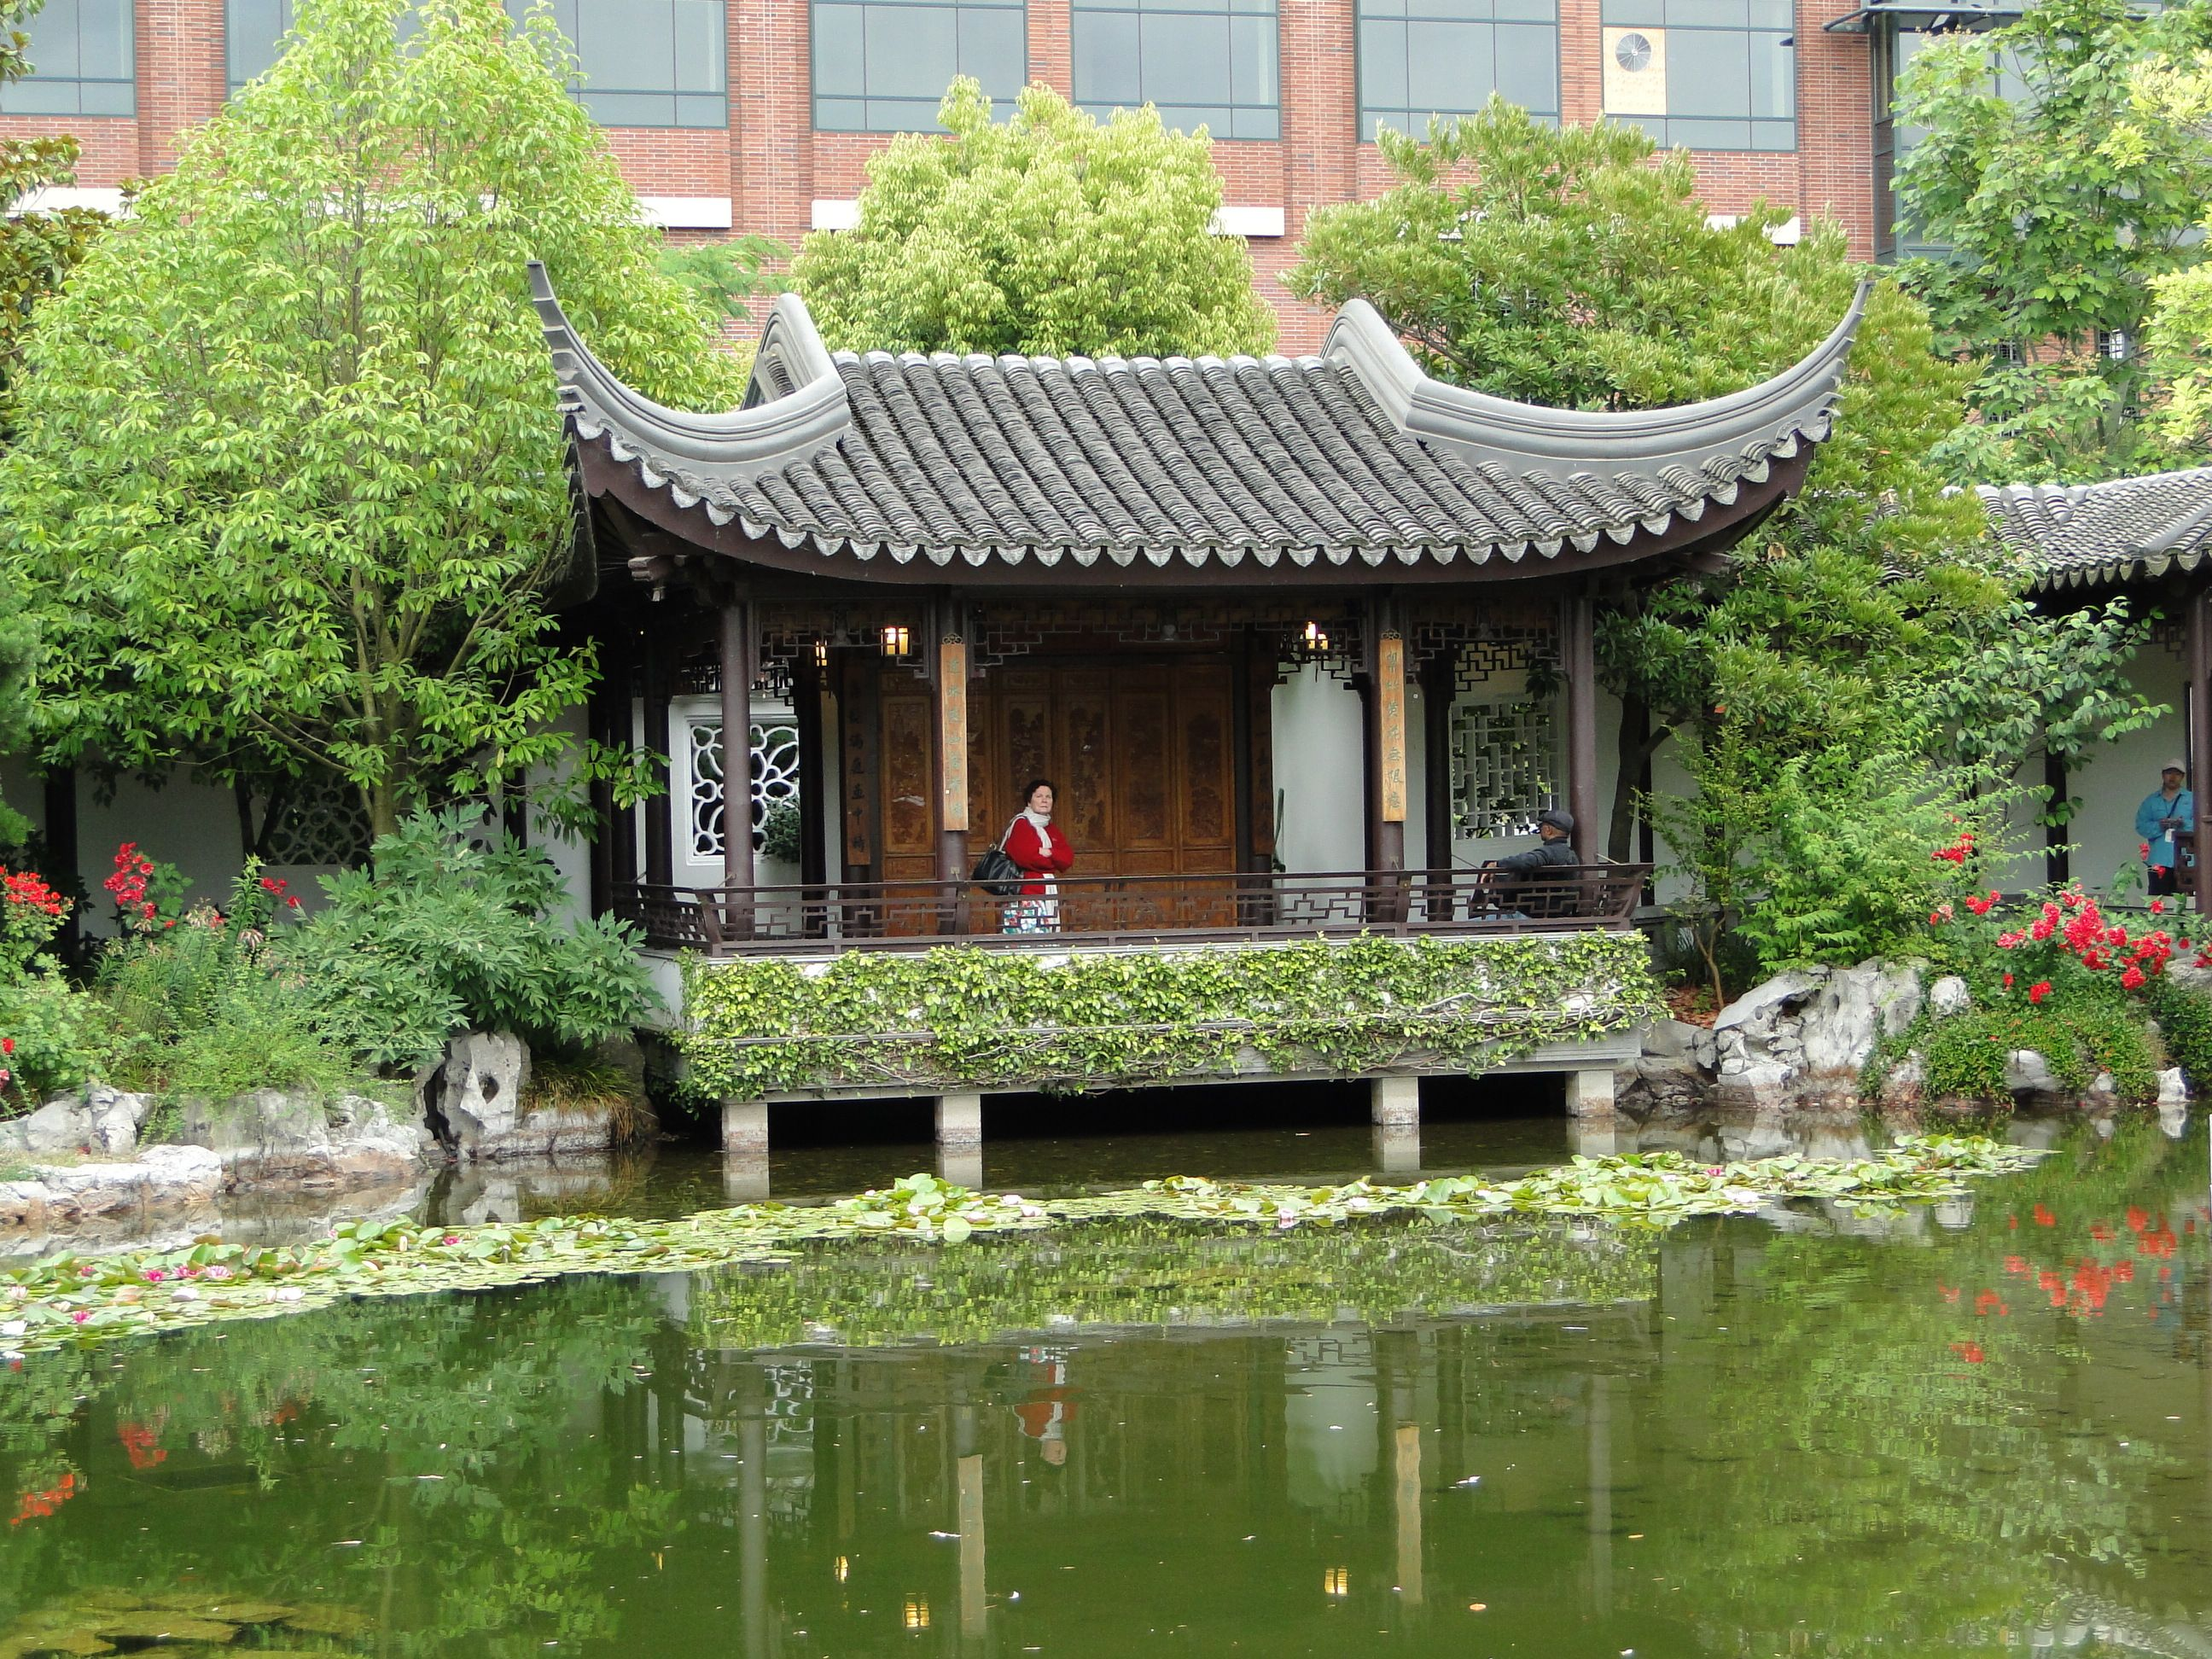 Chinese Gardens In Portland Oregon A Calm Oasis In The Middle Of The City Gardens I Love